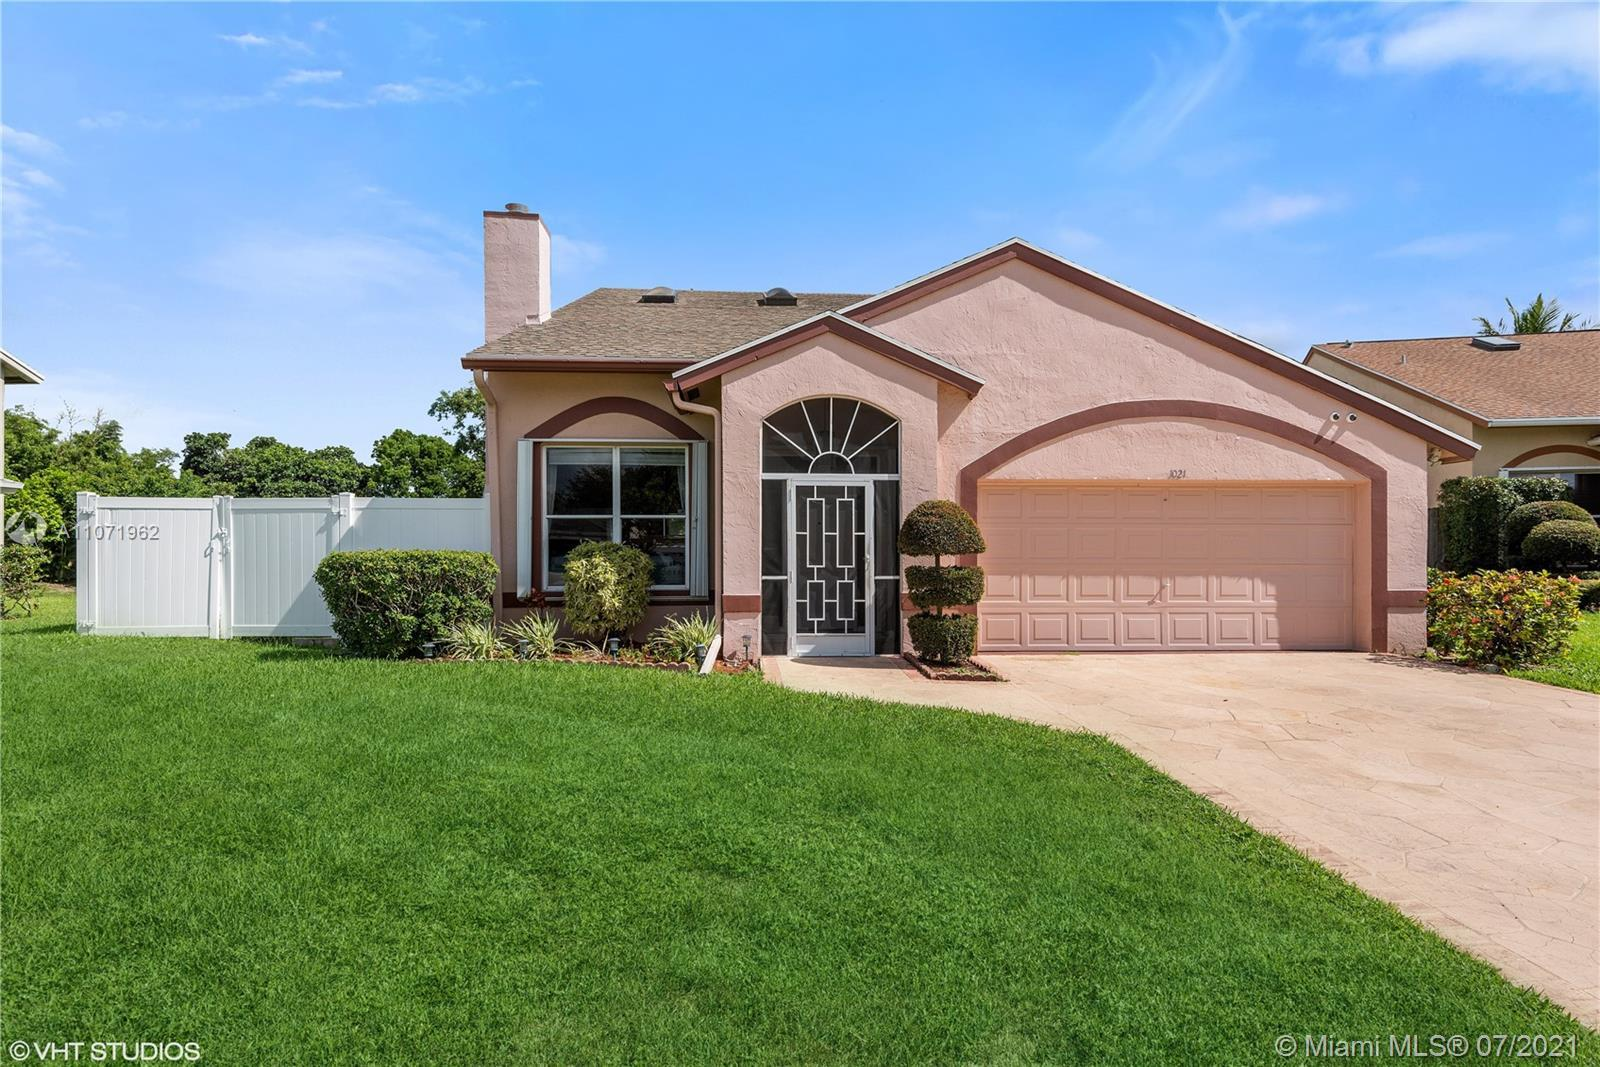 Gorgeous & Upgraded home located in a private cul-de-sac lot in Old Boynton Estates. Two-story built